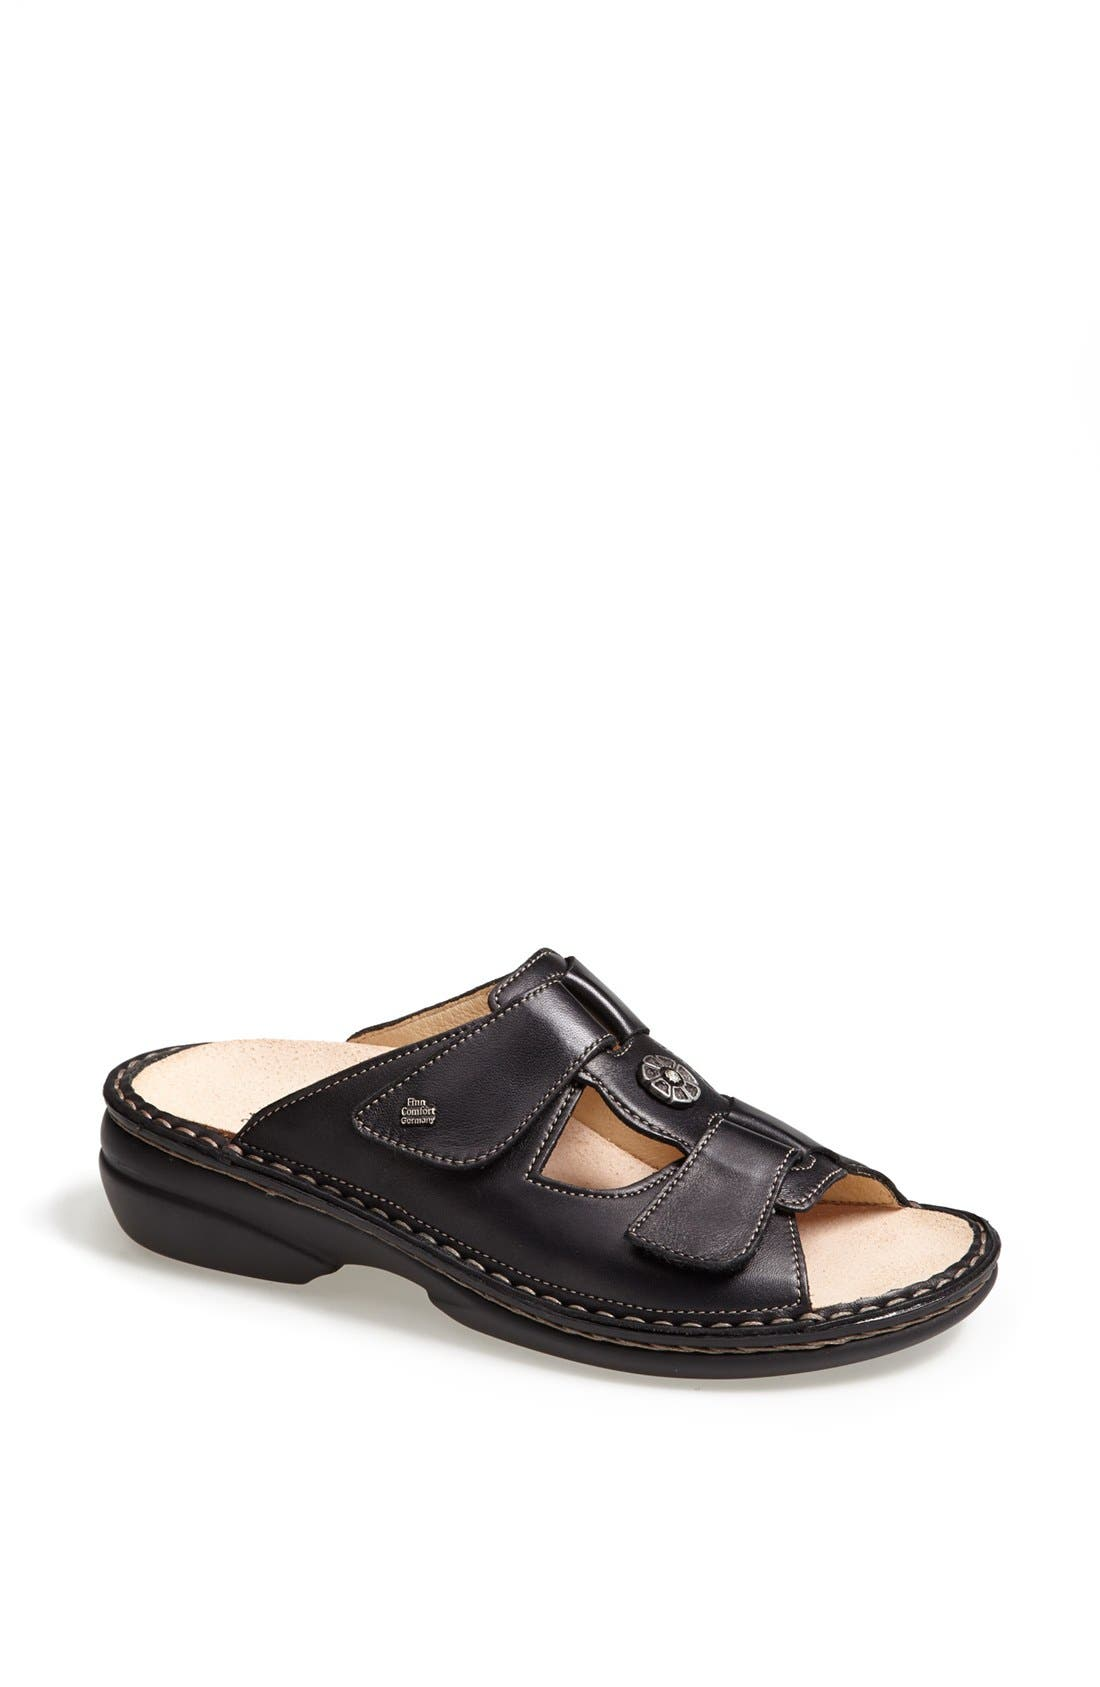 Alternate Image 1 Selected - Finn Comfort 'Pattaya' Leather Sandal